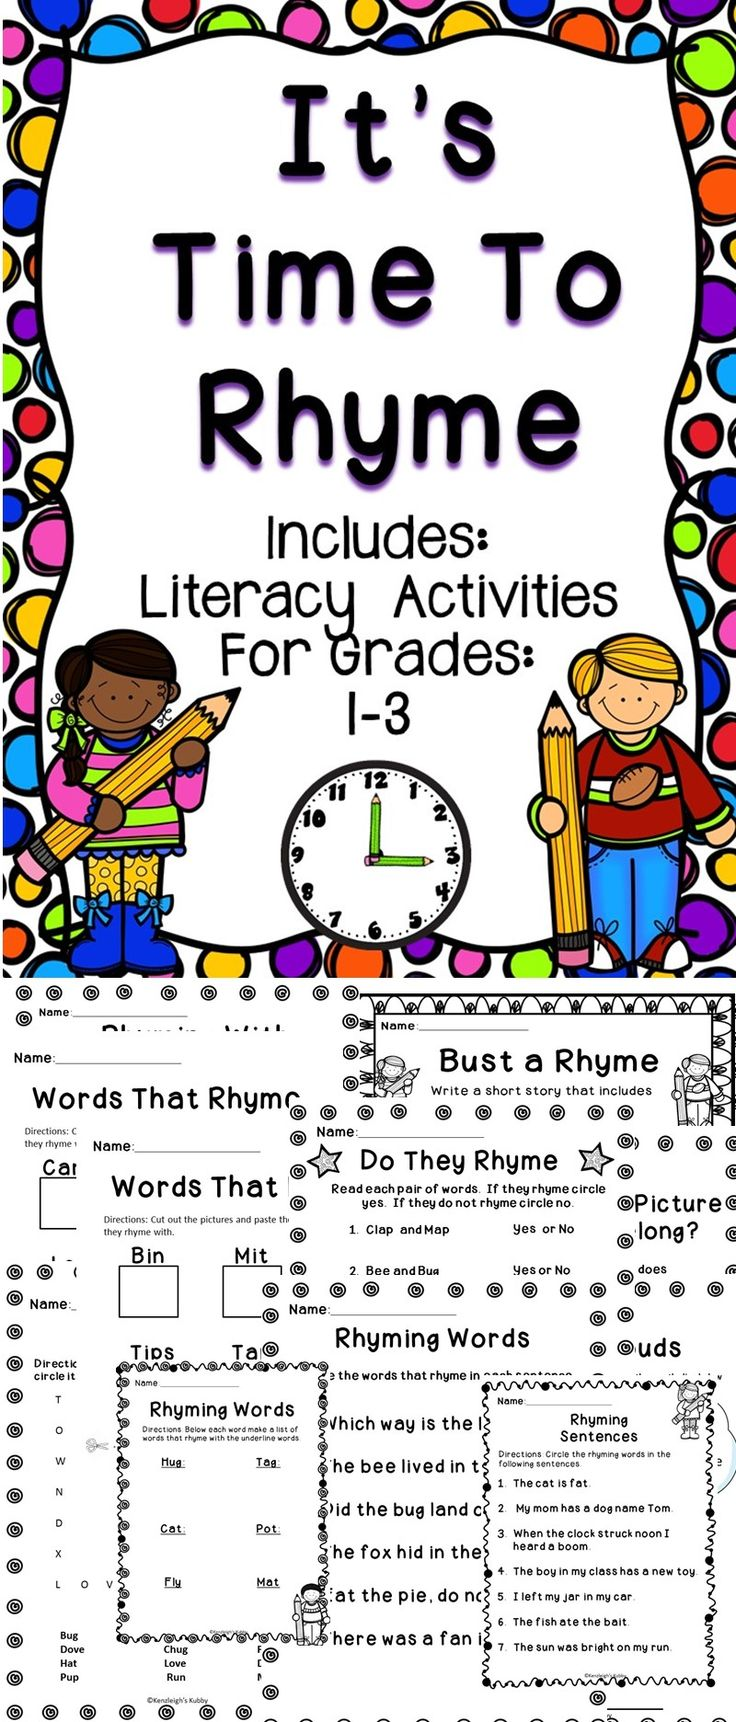 Worksheet Help Rhyming Words rhyming words a fun supplemental activity book to help teach students about this no prep will be gre